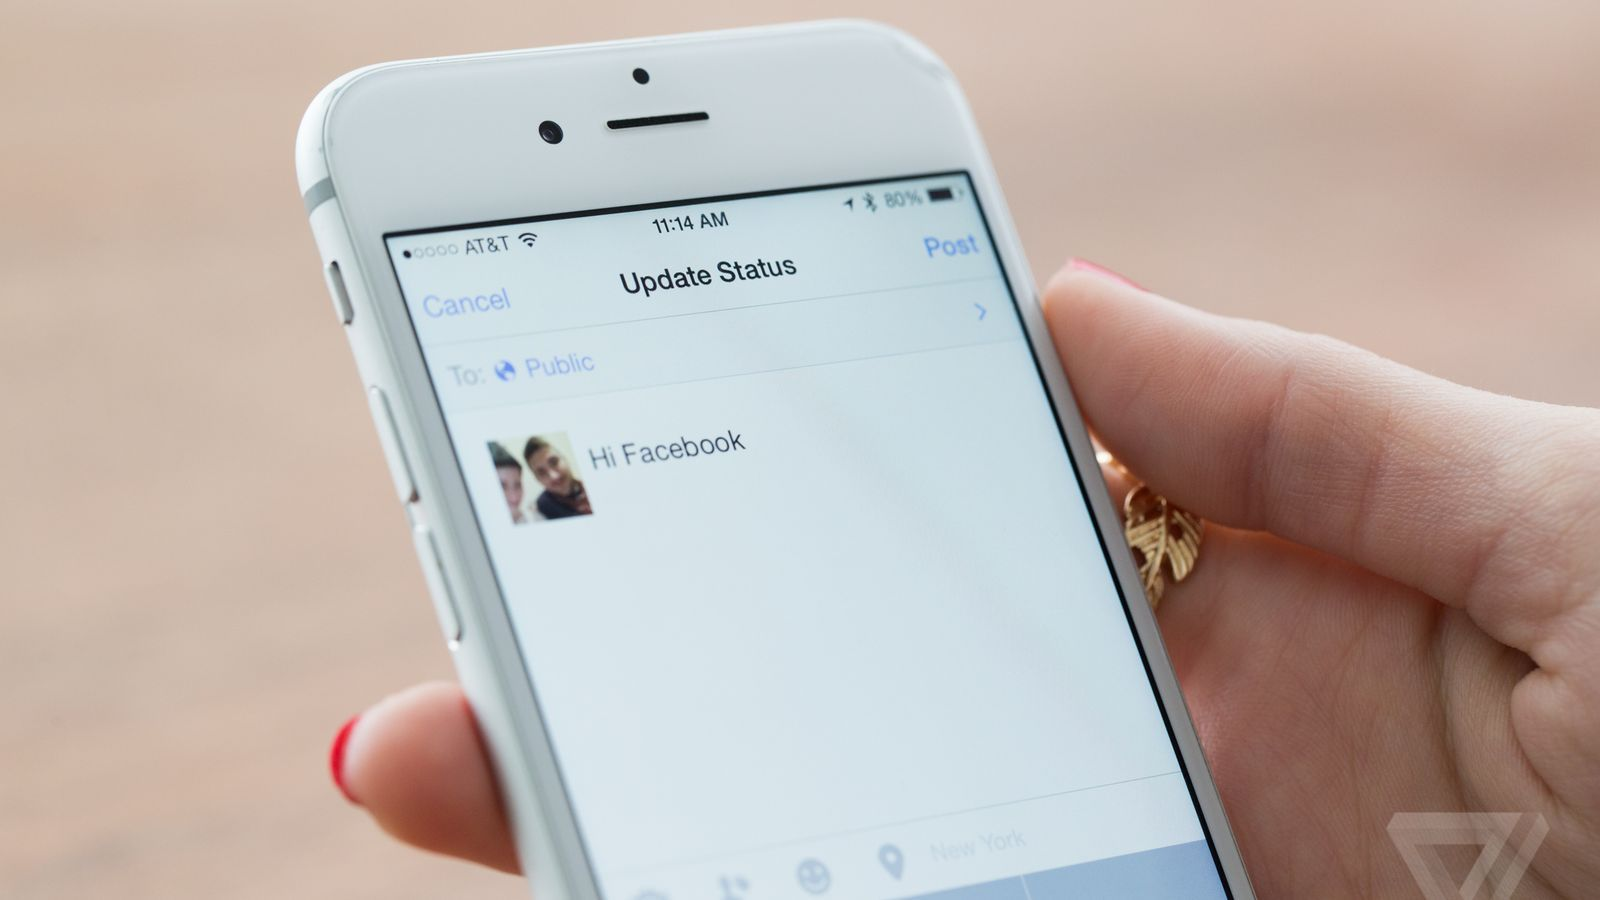 Facebook admits that its app is draining your iPhone's battery | The Verge